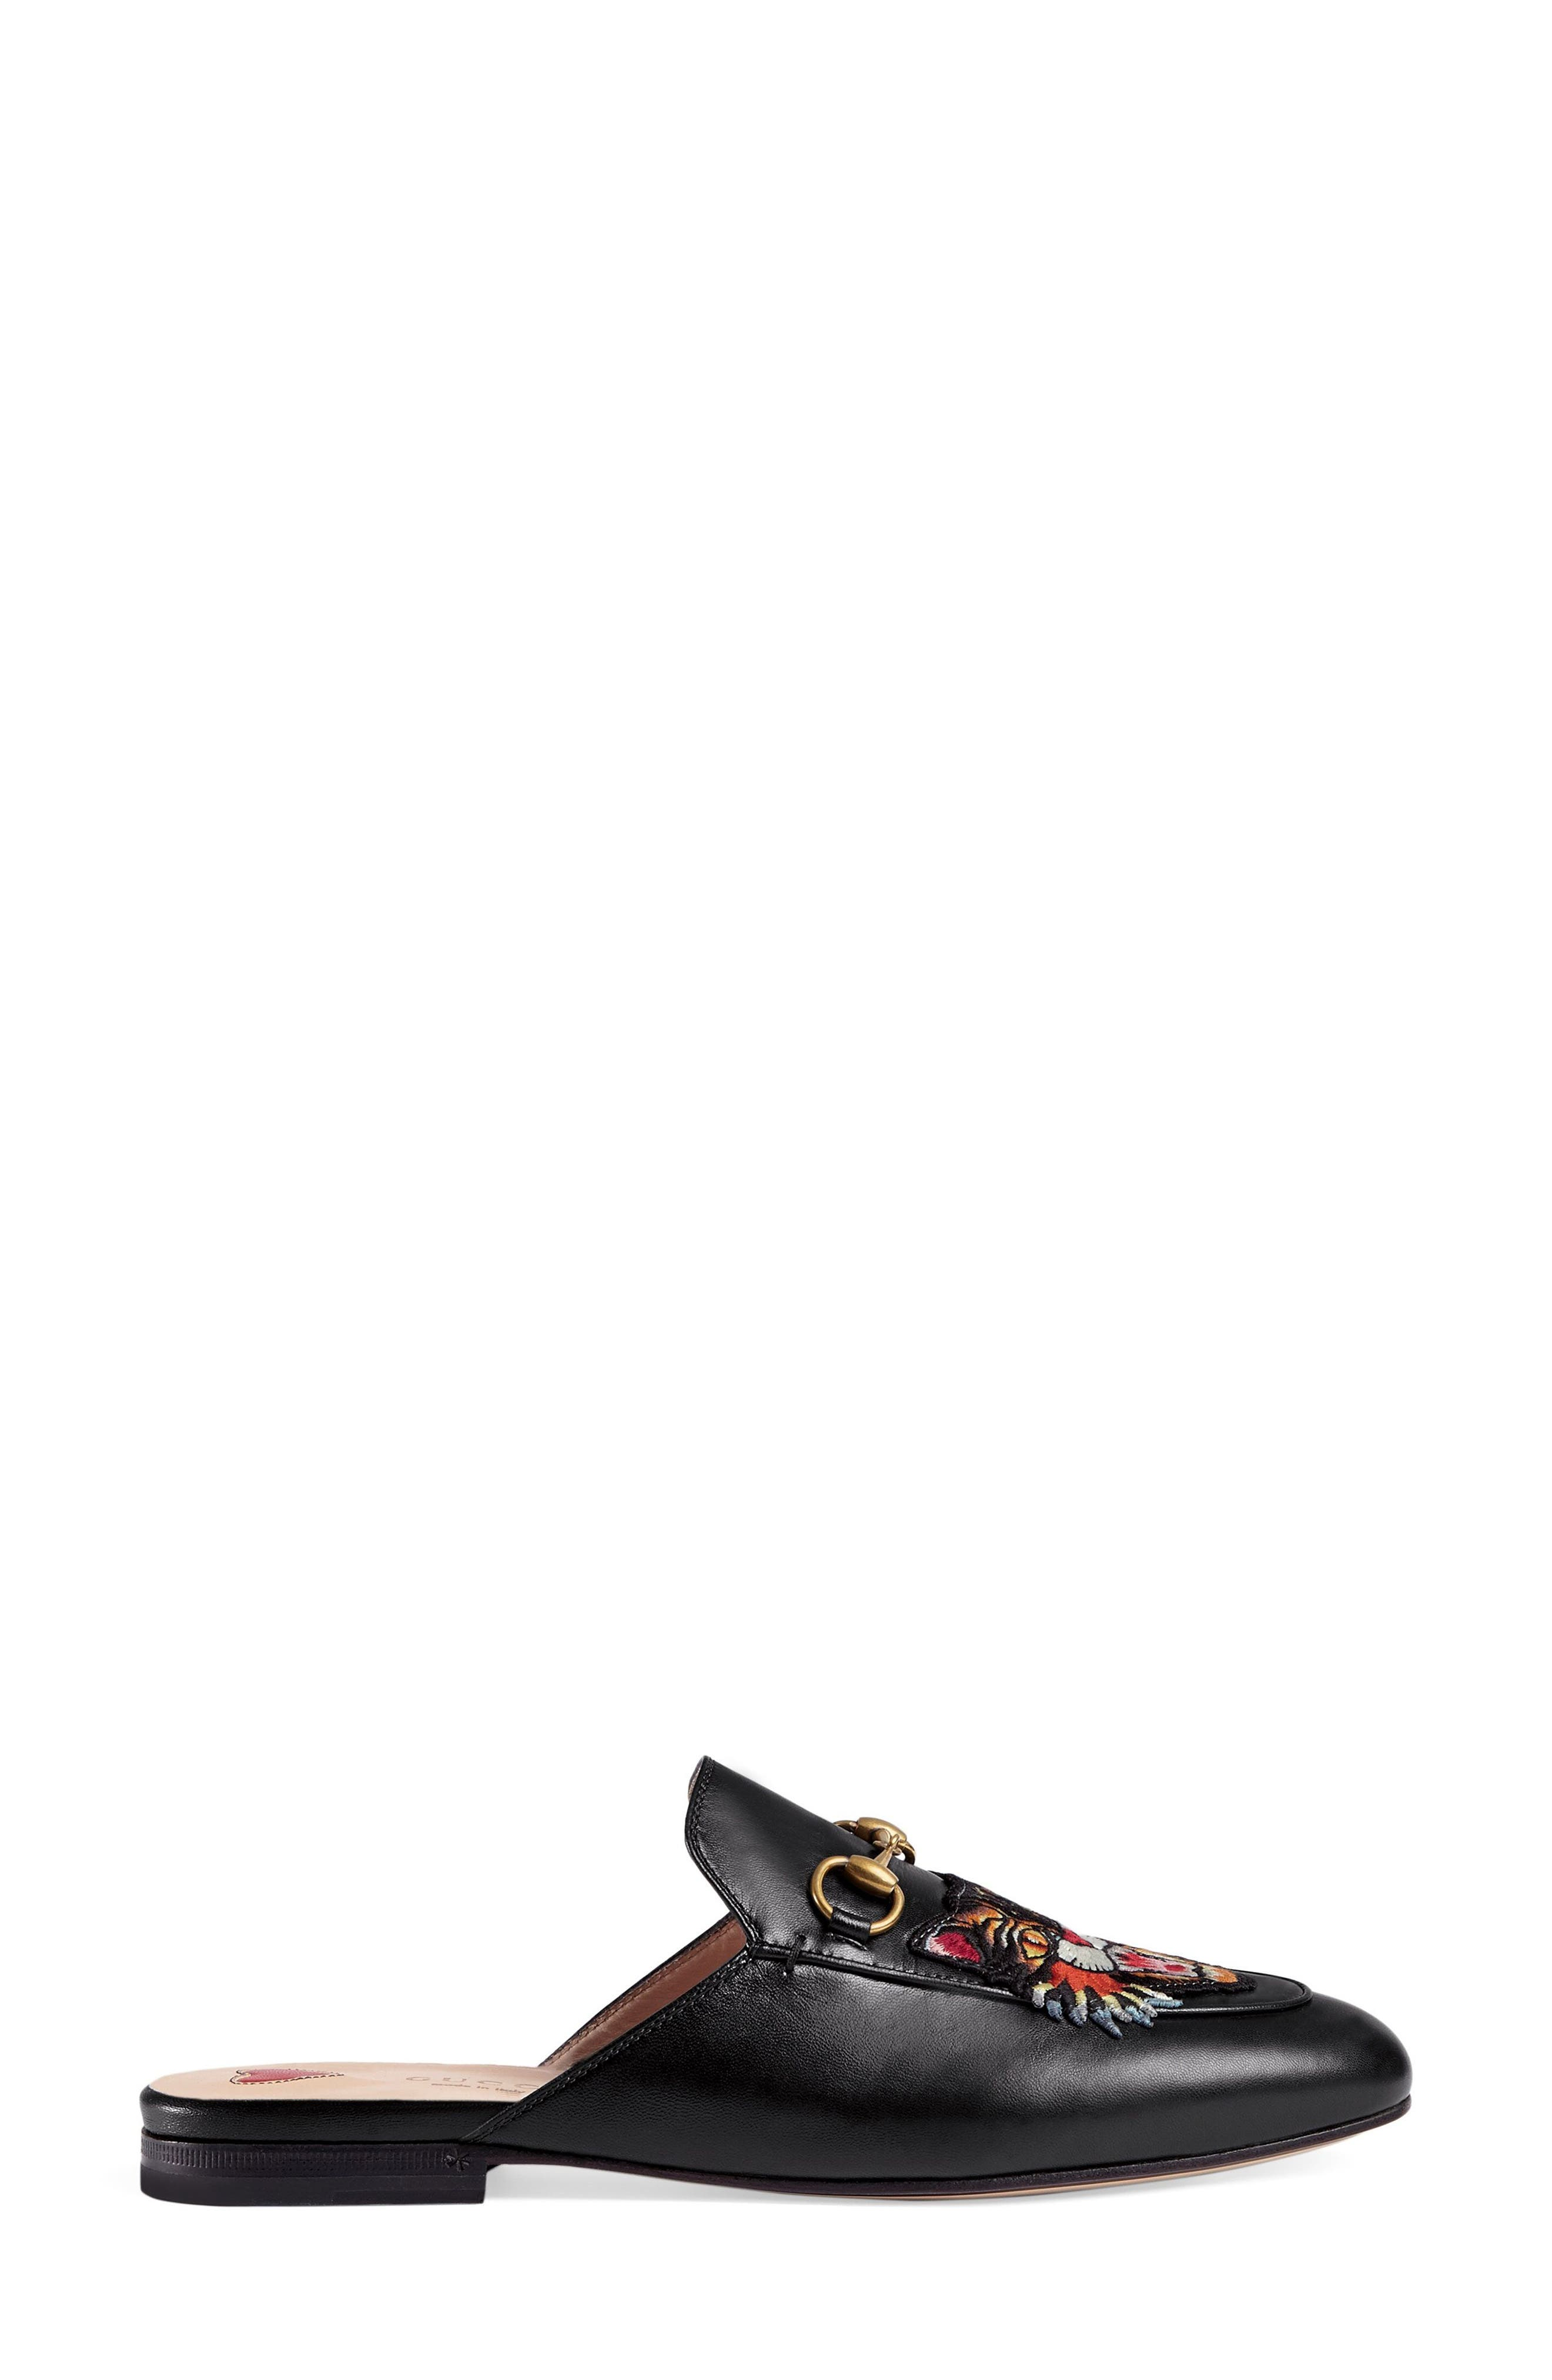 Alternate Image 1 Selected - Gucci Princetown Angry Cat Mule Loafer (Women)